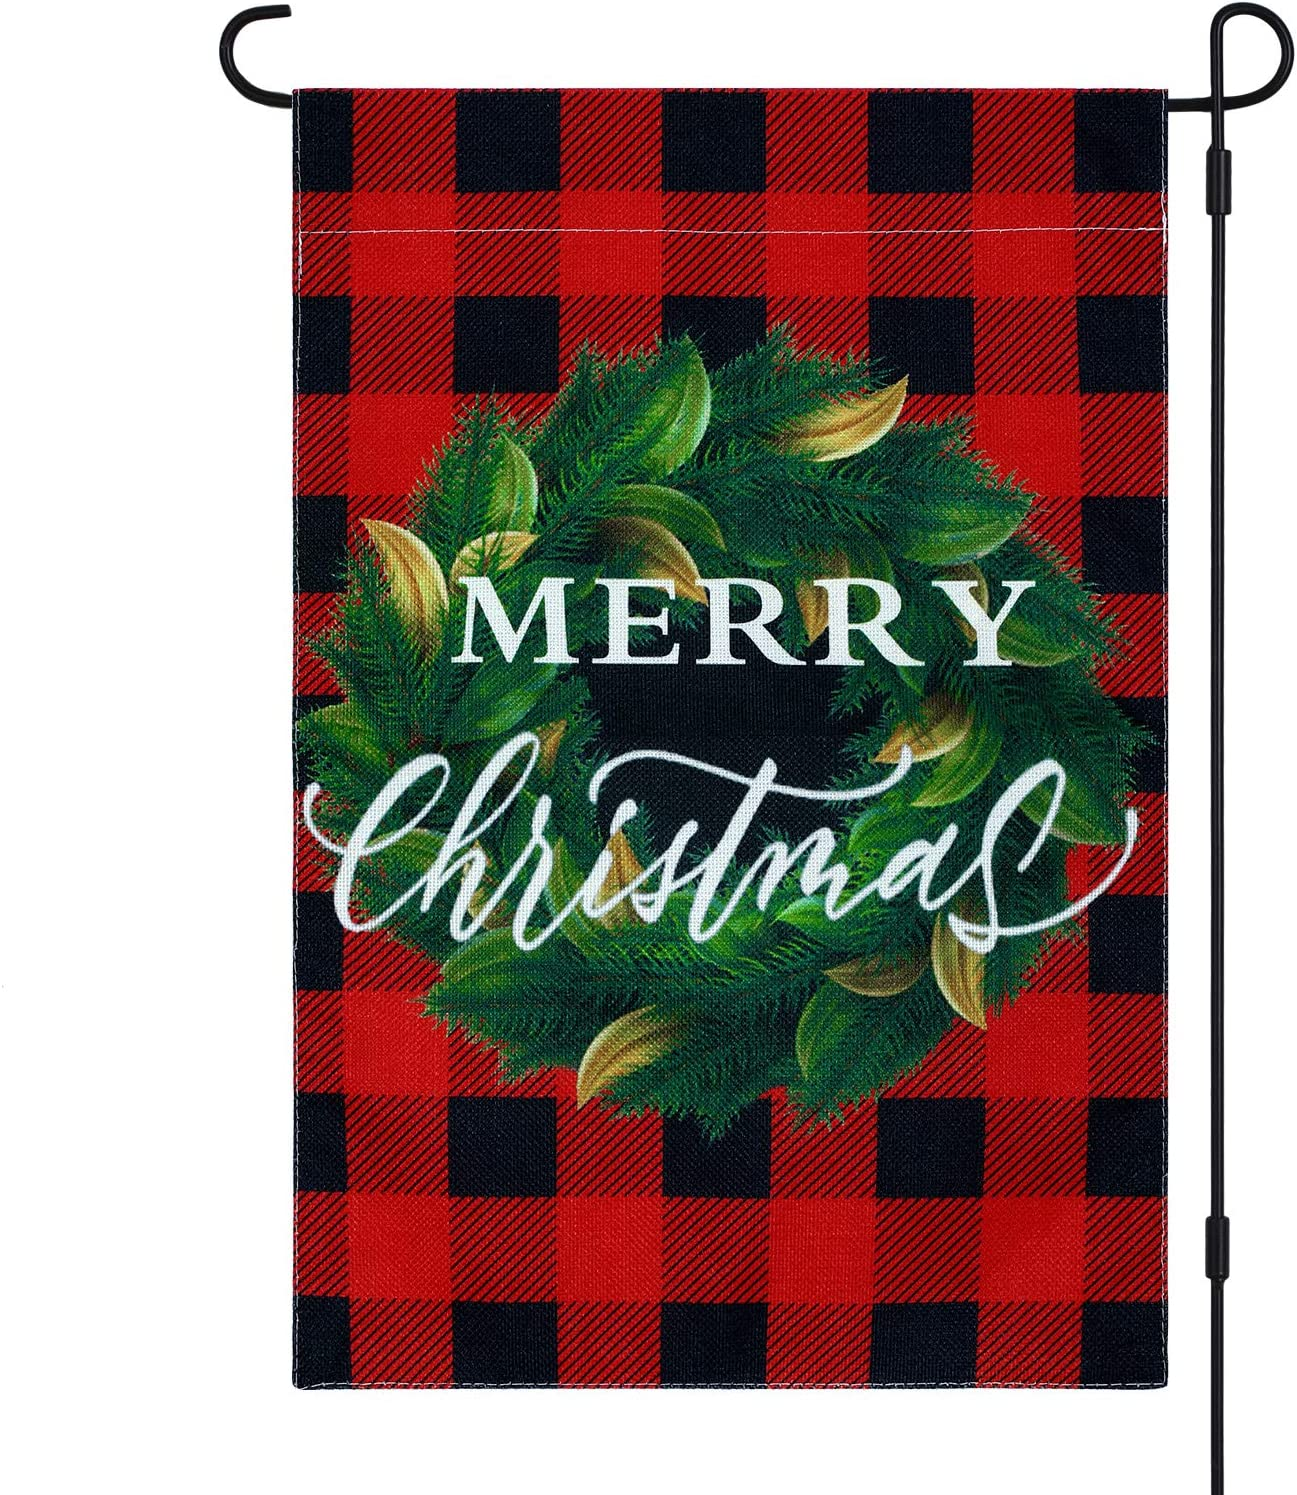 Christmas Garden Flag Red and Black Buffalo Plaid Wreath Garden Flag Double Sided Christmas Yard Burlap Flag for Outdoor House Decoration, 12.5 x 18 Inches